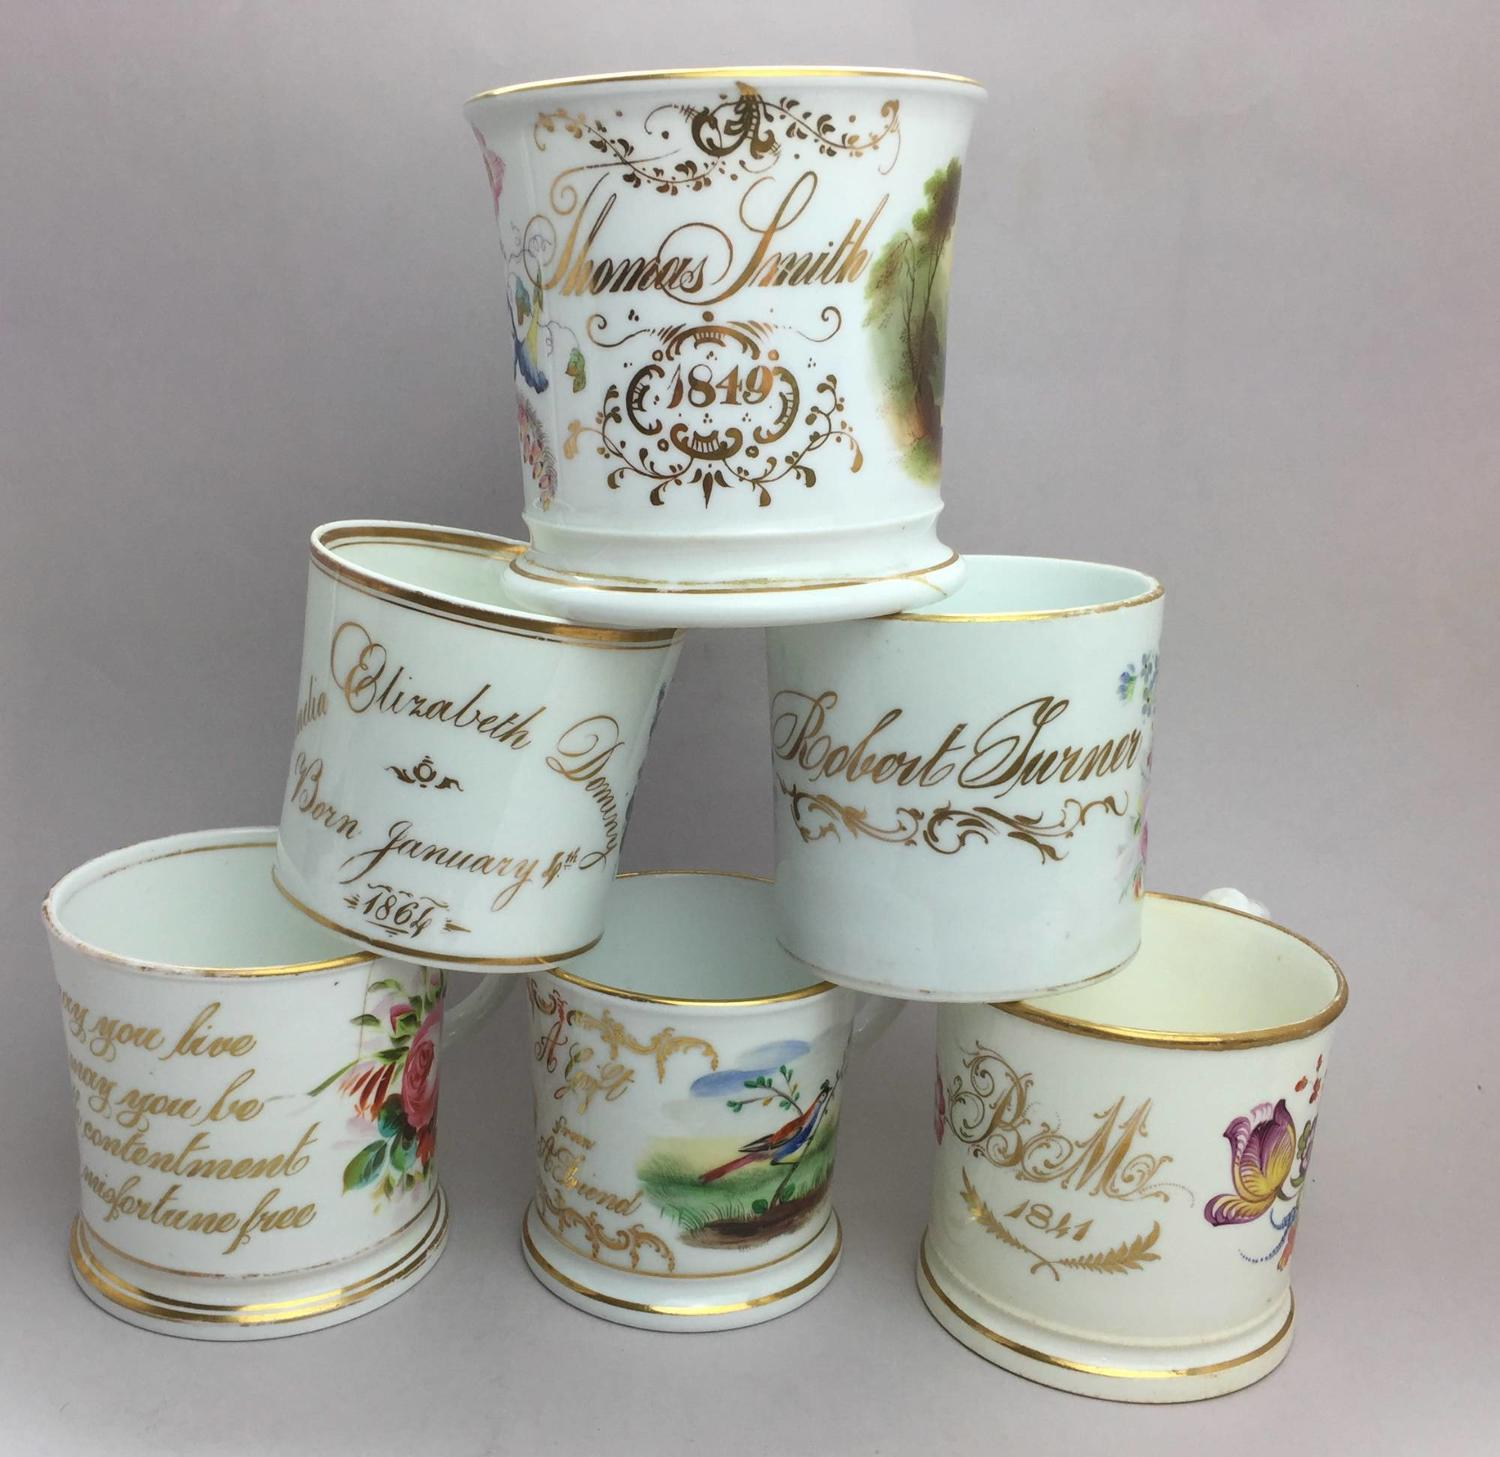 Collection of Victorian Porcelain Christening & Friendship Mugs